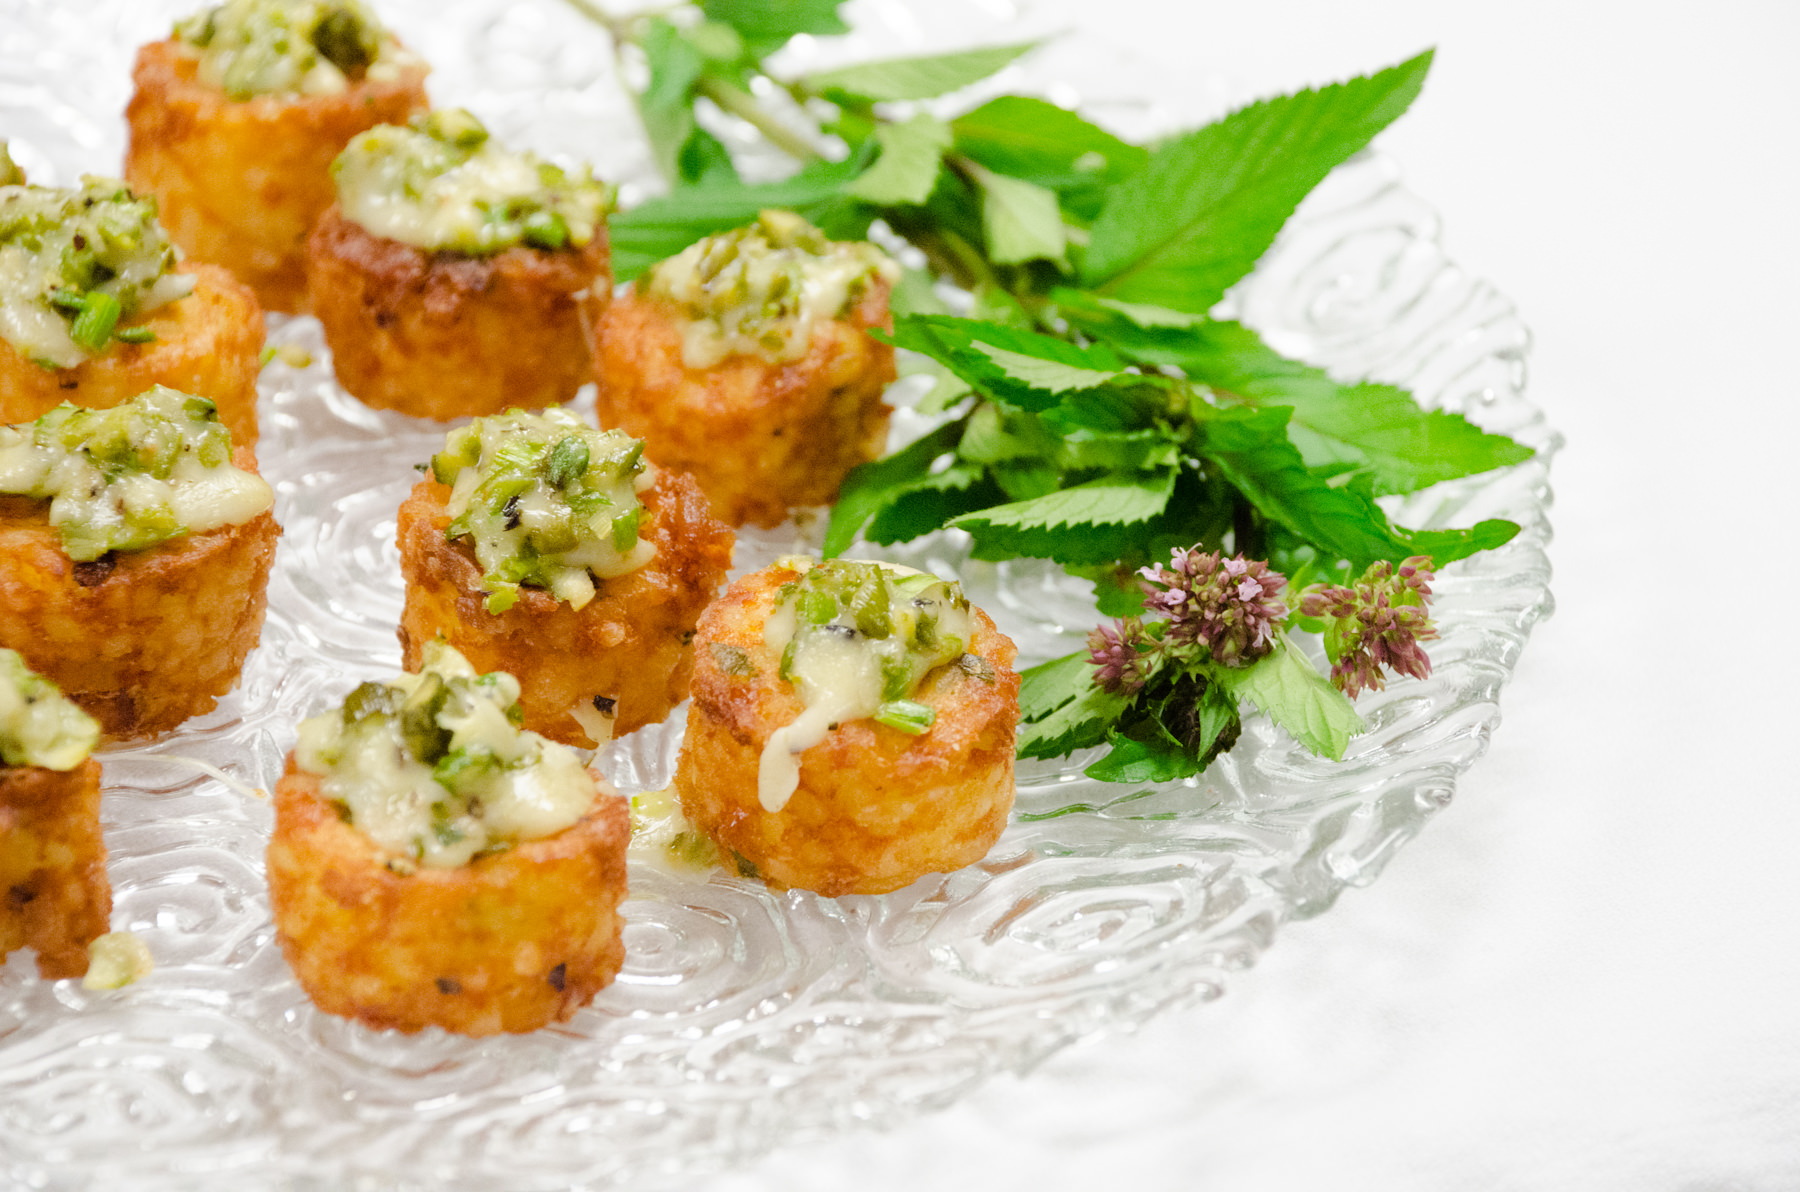 Risotto Cakes topped with Asparagus and Parmesan Cheese from Catering by Seasosn